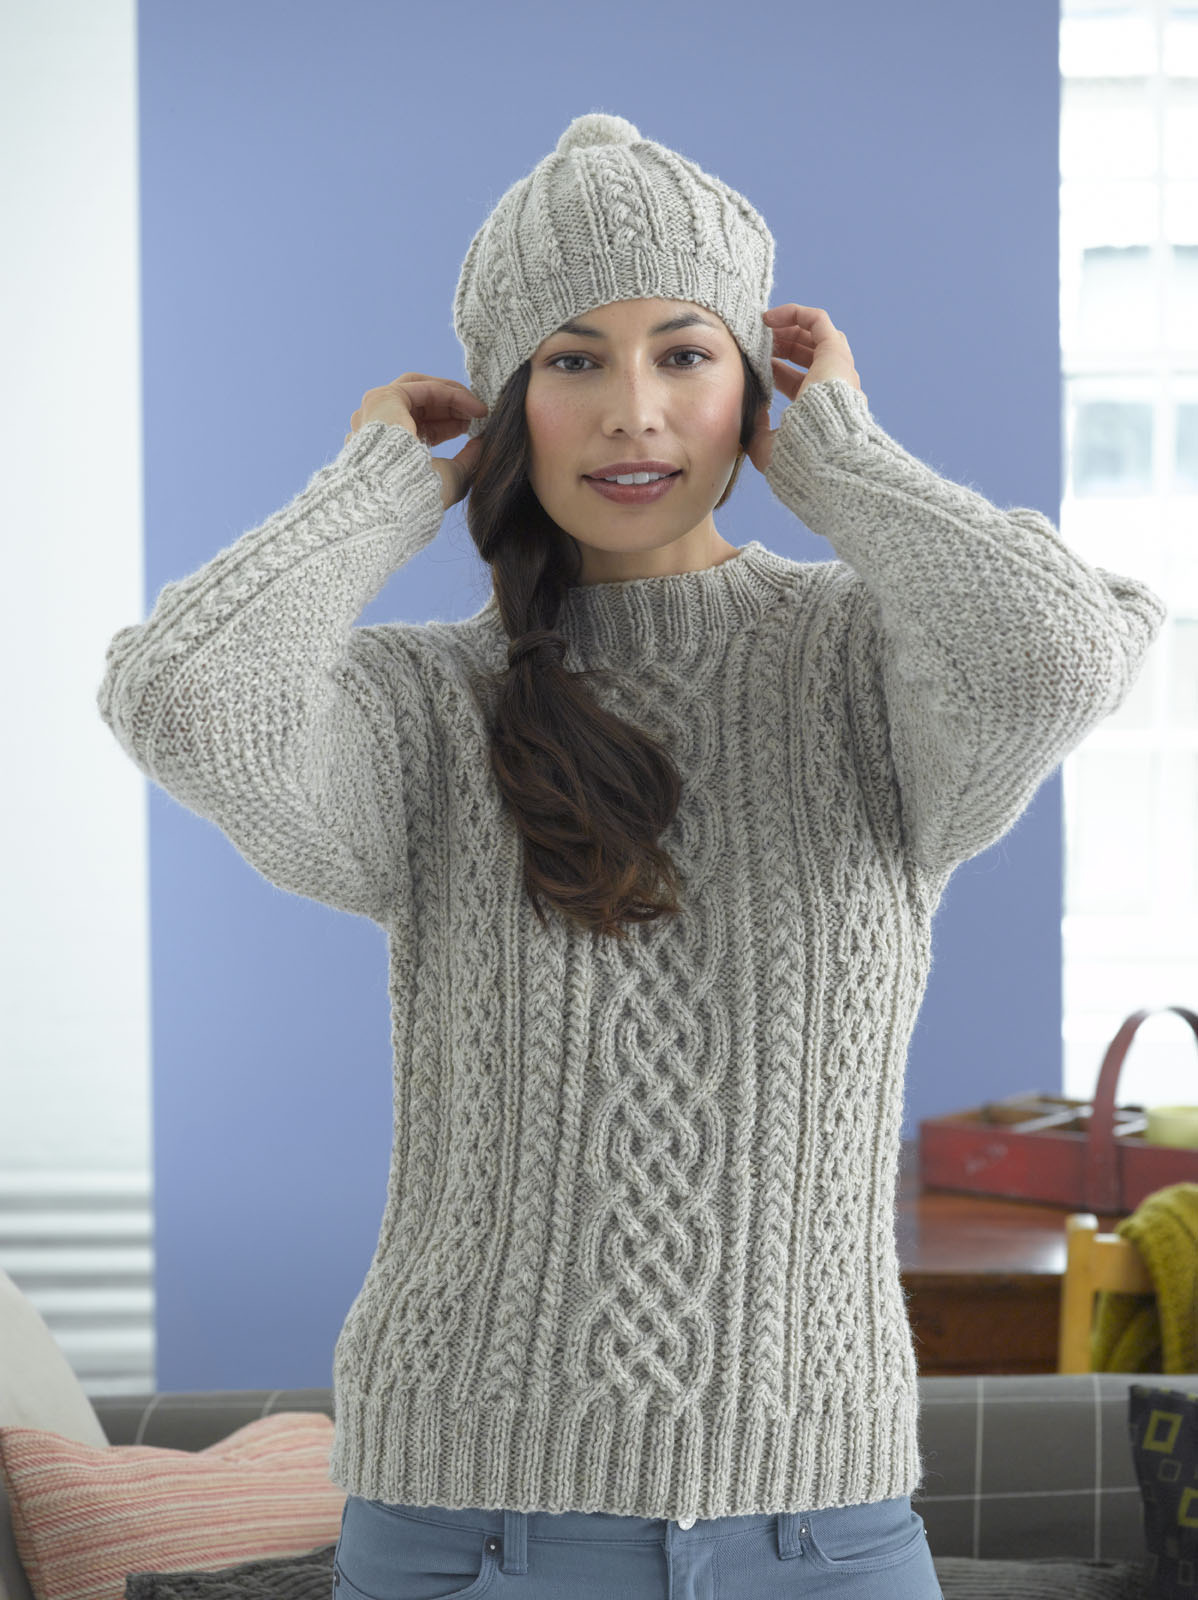 free aran knitting patterns cute-free-aran-knitting-patterns-ladies-top-5- xstxisa